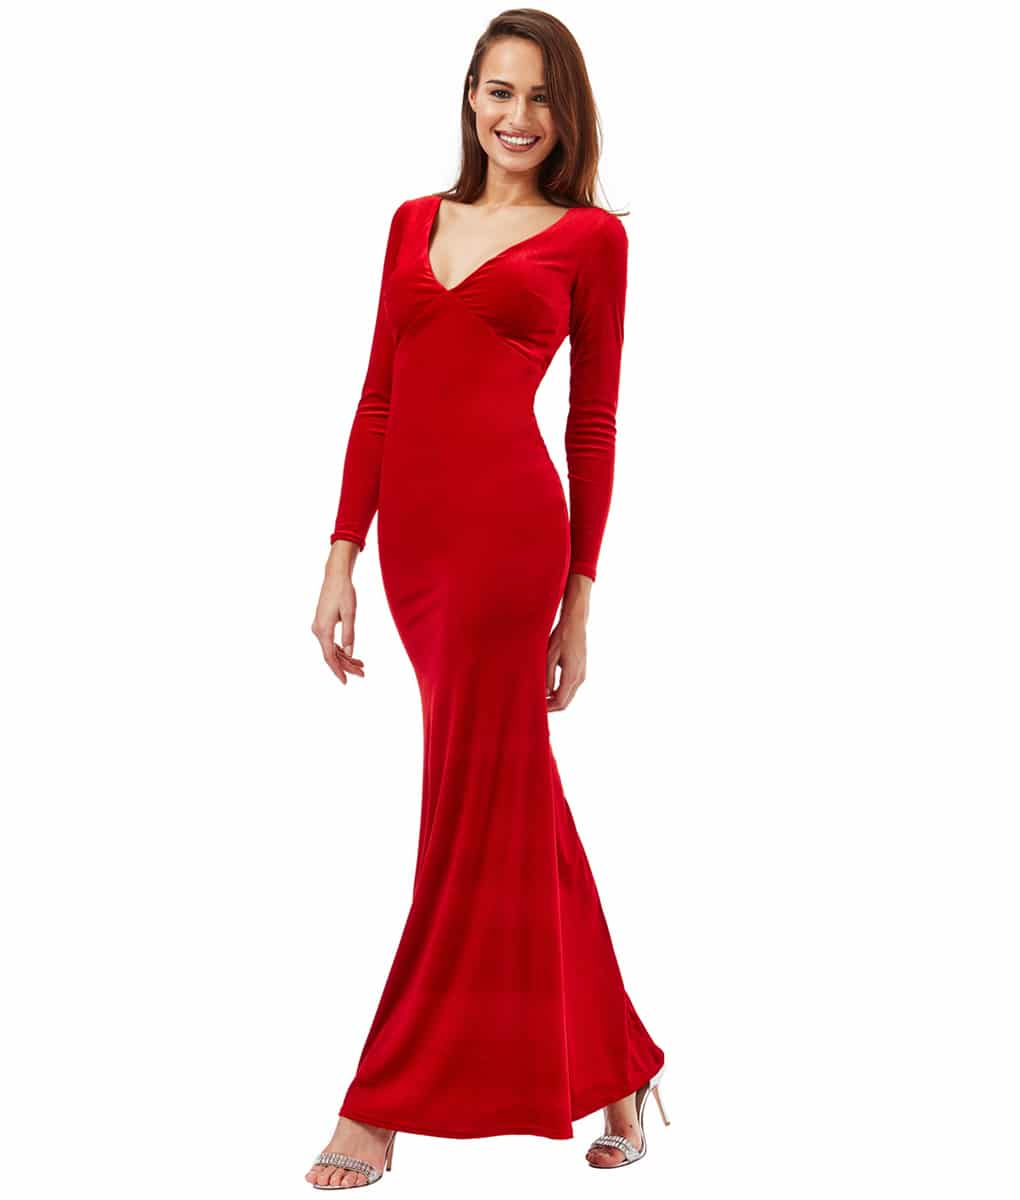 Alila-Red-Velvet-open-back-gown-City-Goddess